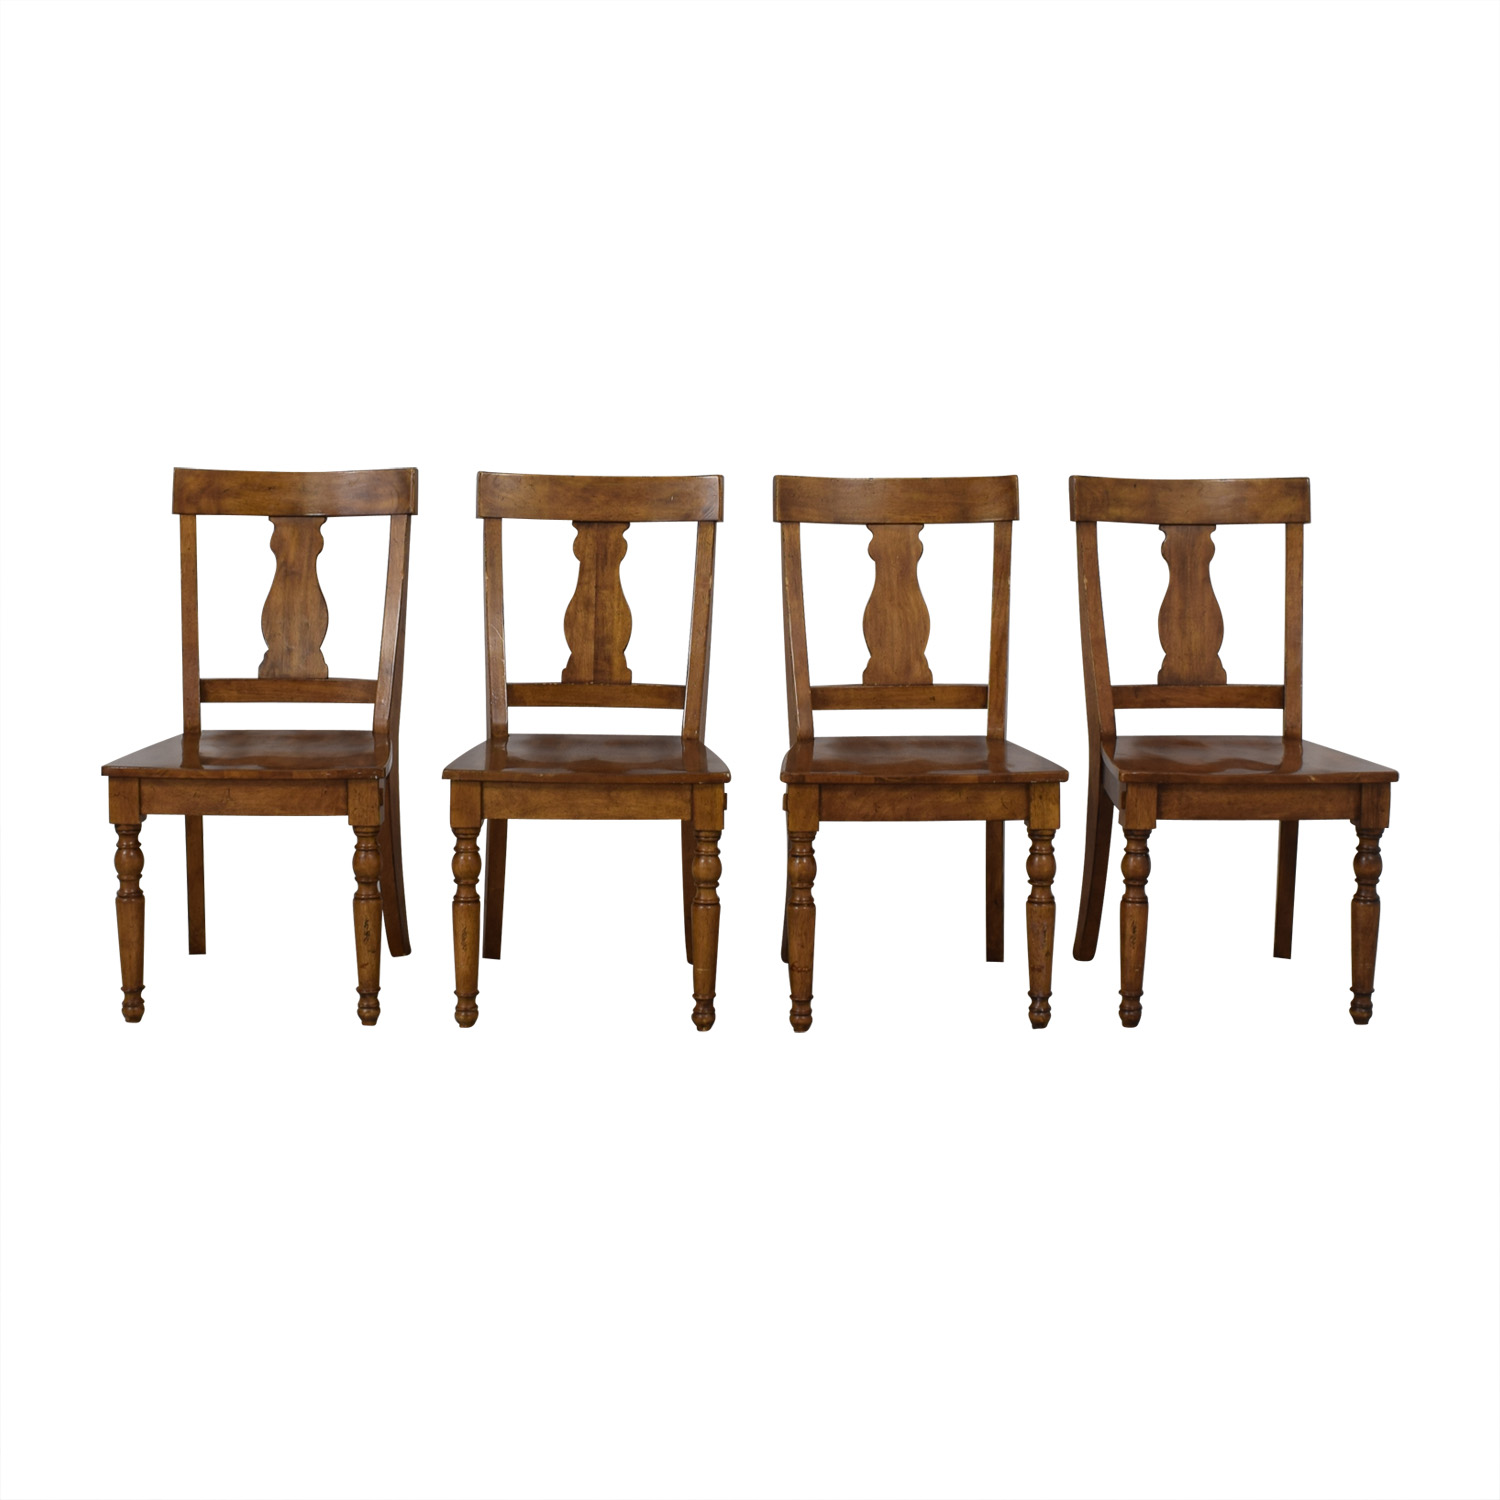 Pottery Barn Pottery Barn Harvest Dining Side Chairs nj